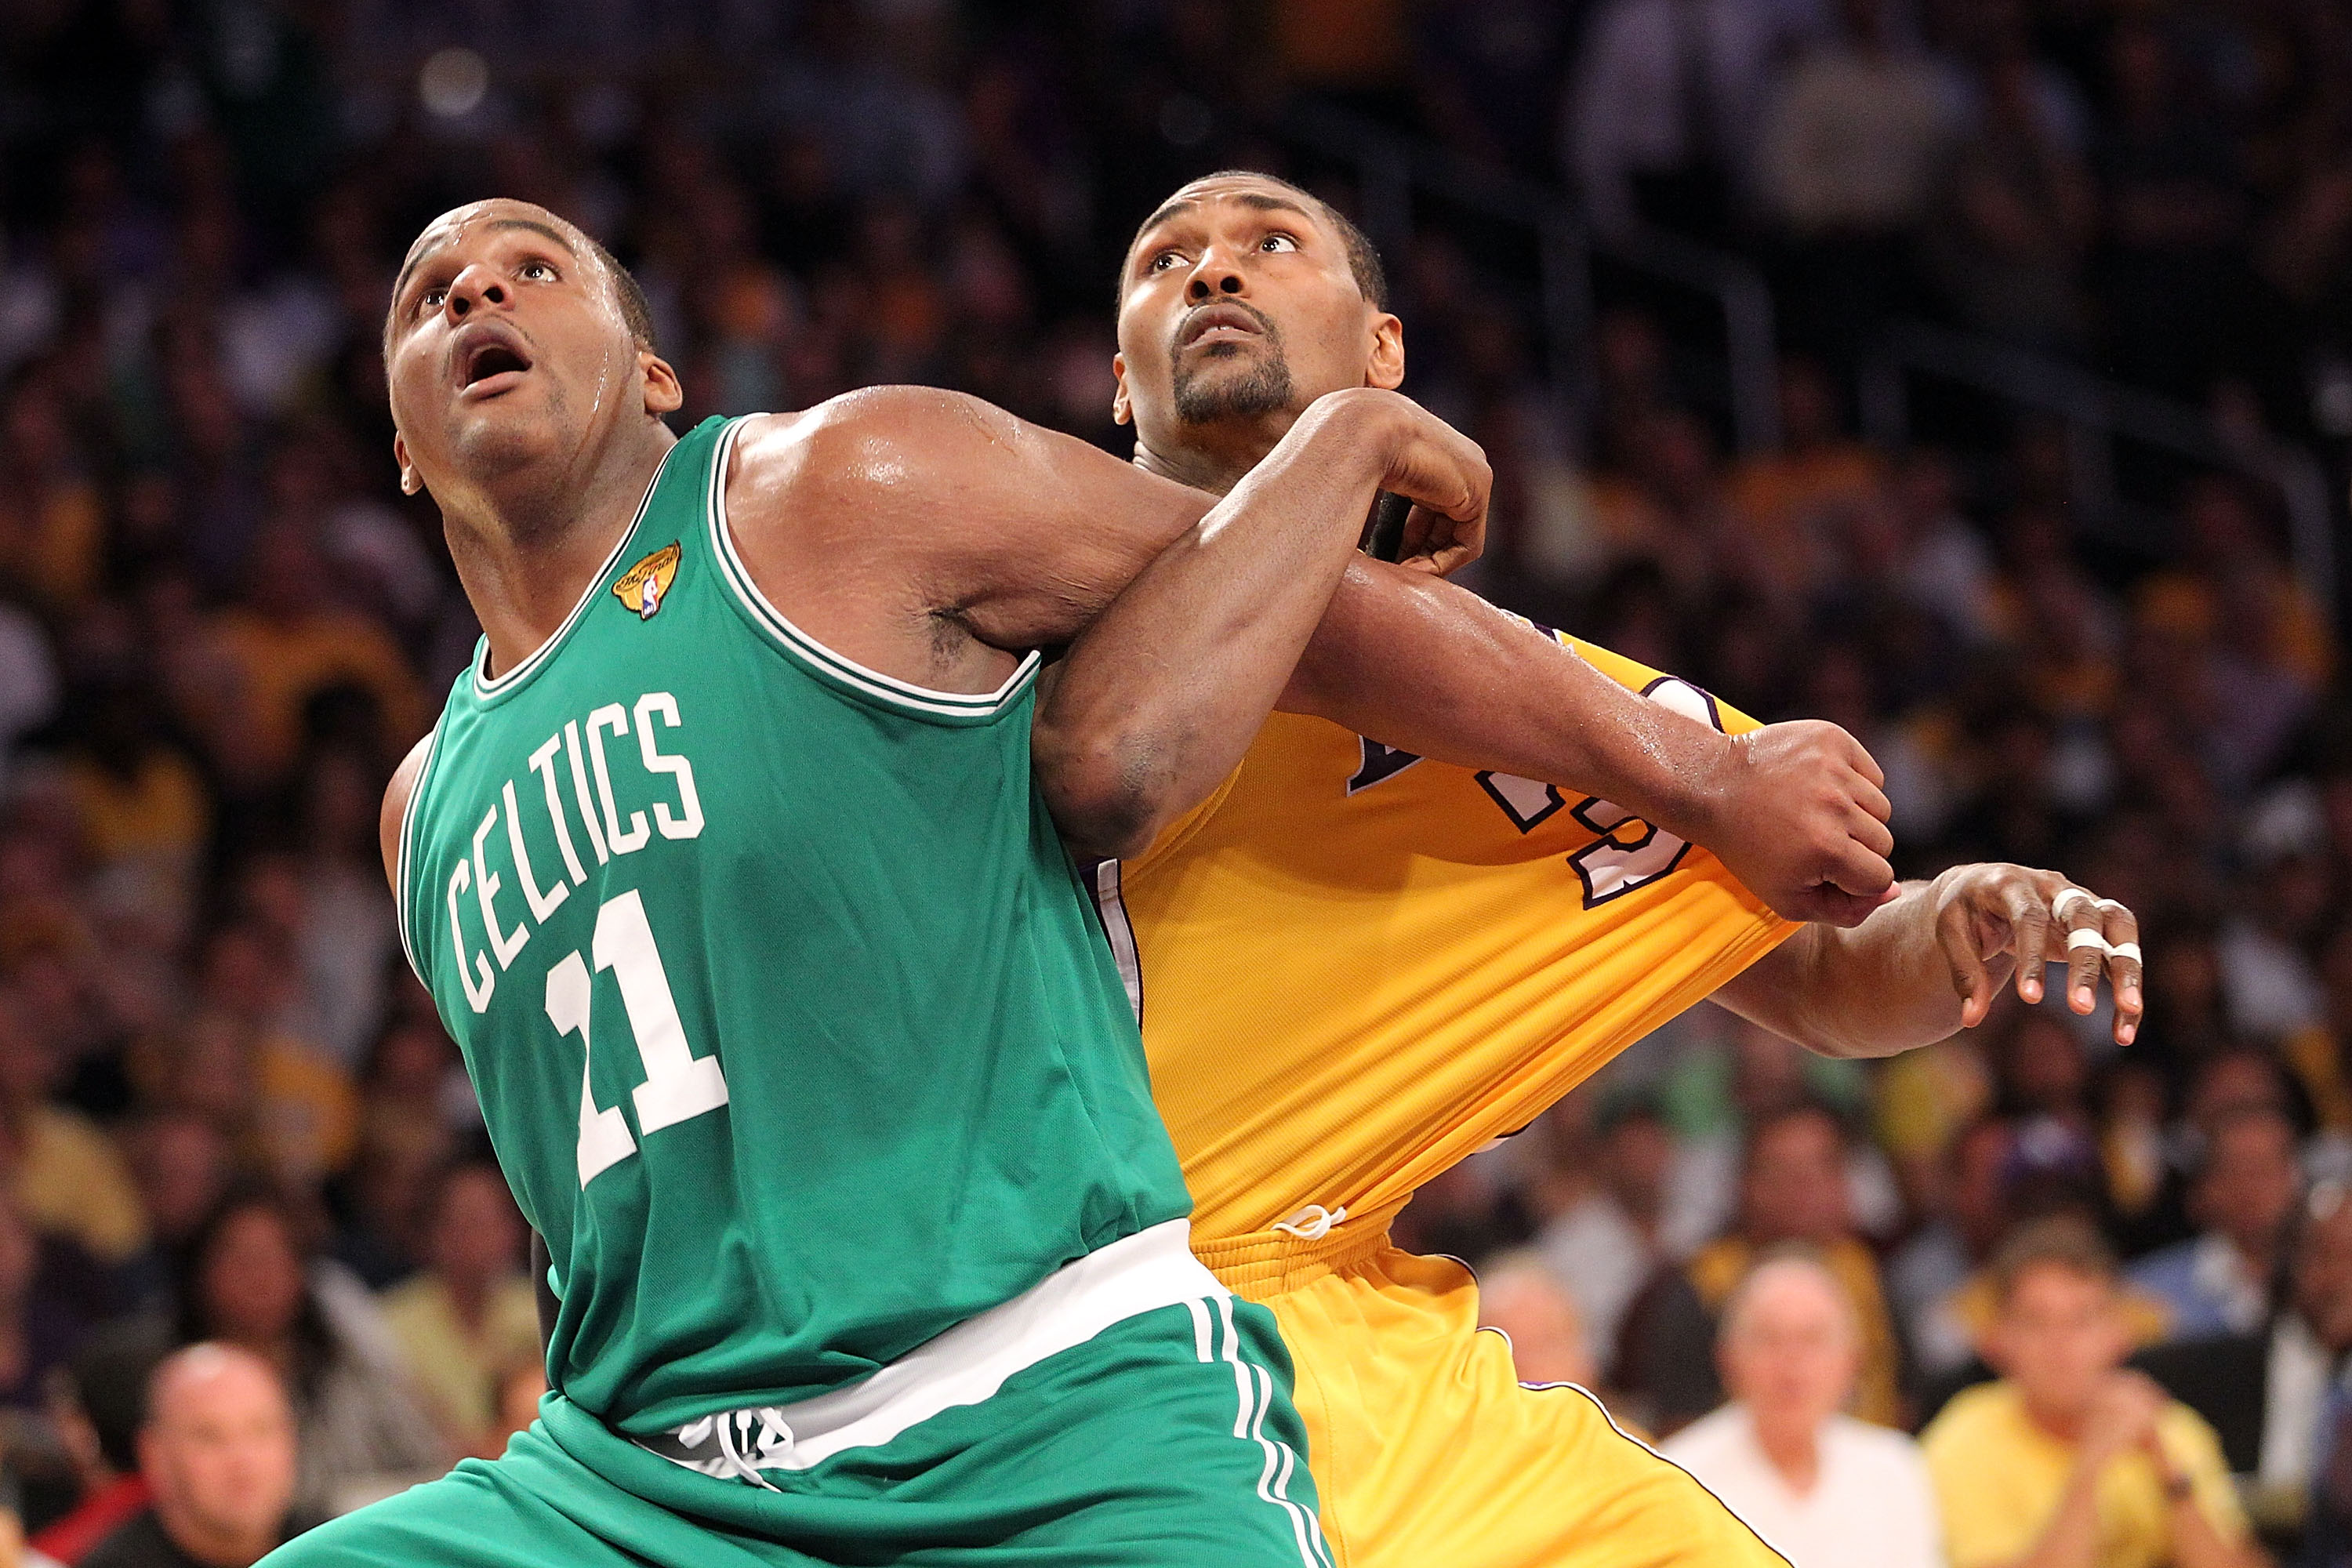 LOS ANGELES, CA - JUNE 17:  Glen Davis #11 of the Boston Celtics and Ron Artest #37 of the Los Angeles Lakers battle for position on a free throw in the first half of Game Seven of the 2010 NBA Finals at Staples Center on June 17, 2010 in Los Angeles, Cal